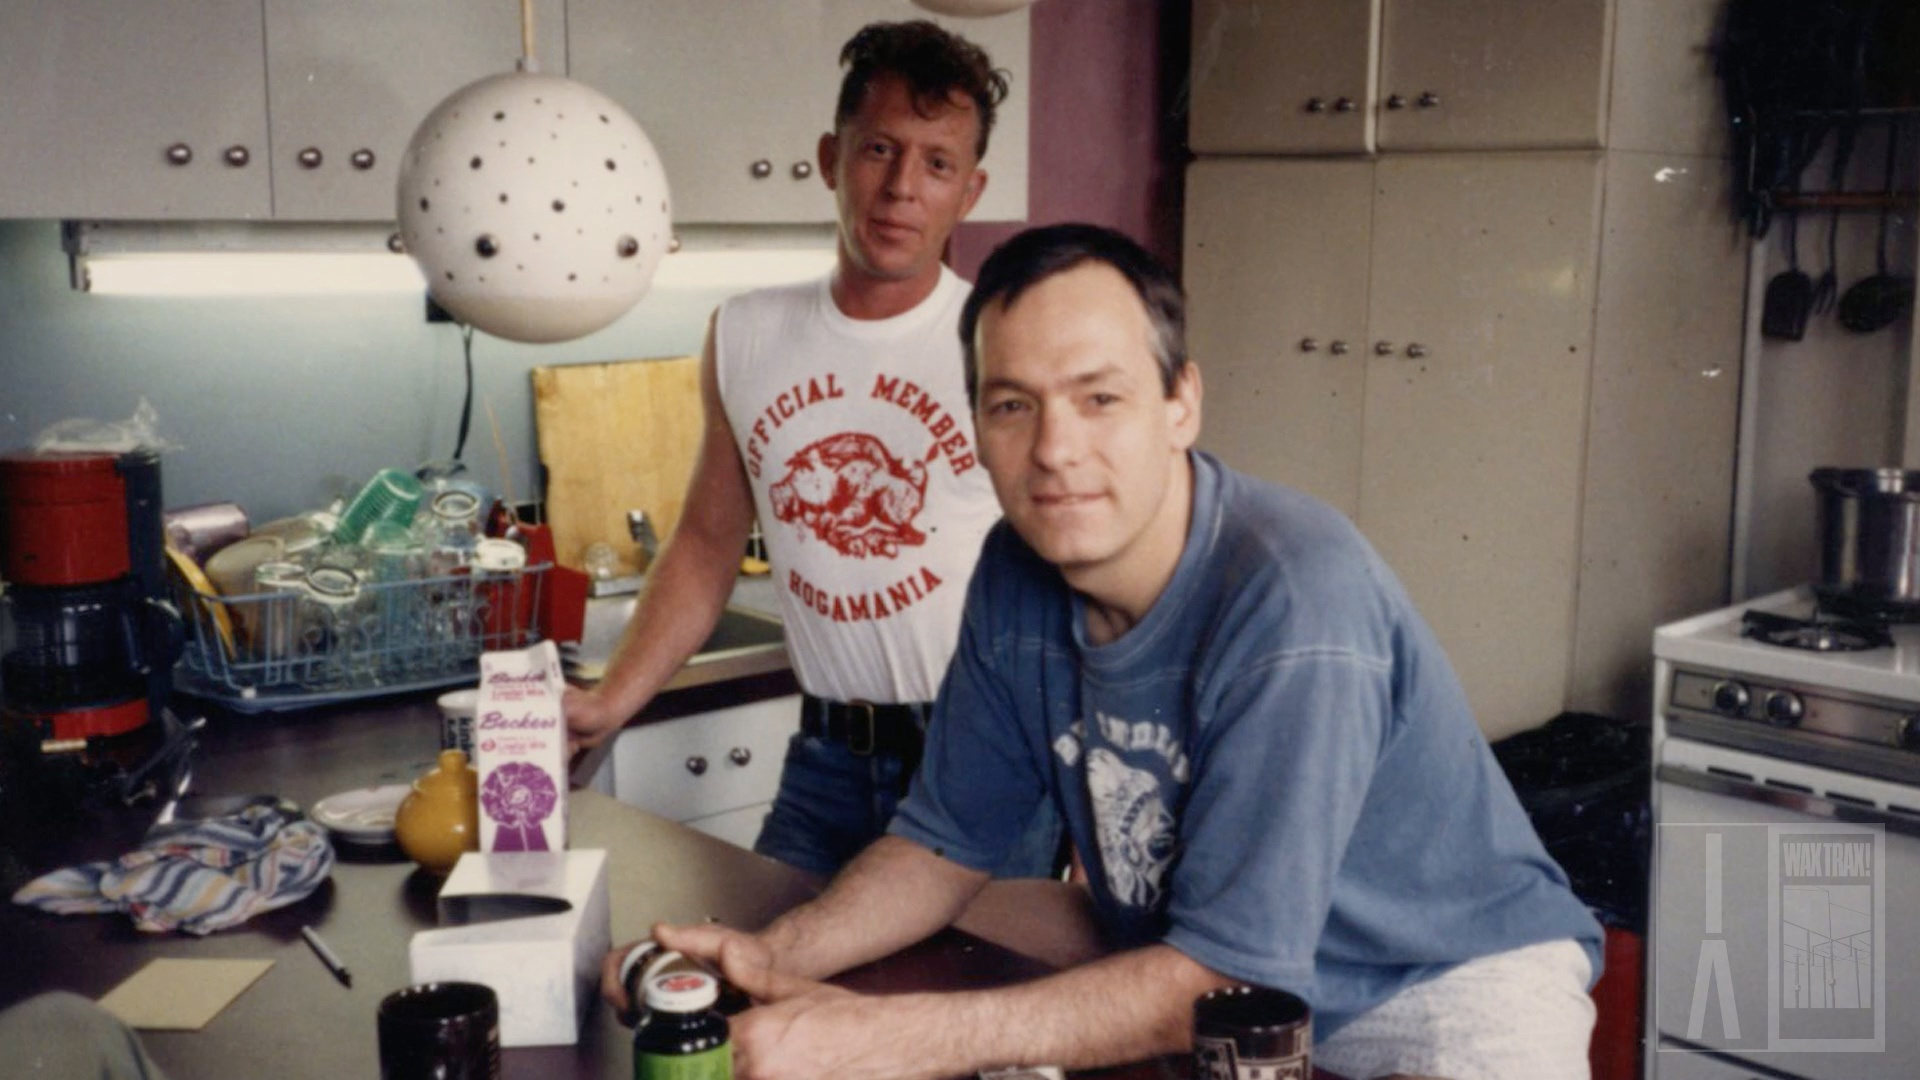 Industry Accident: The Story of Wax Trax! Records